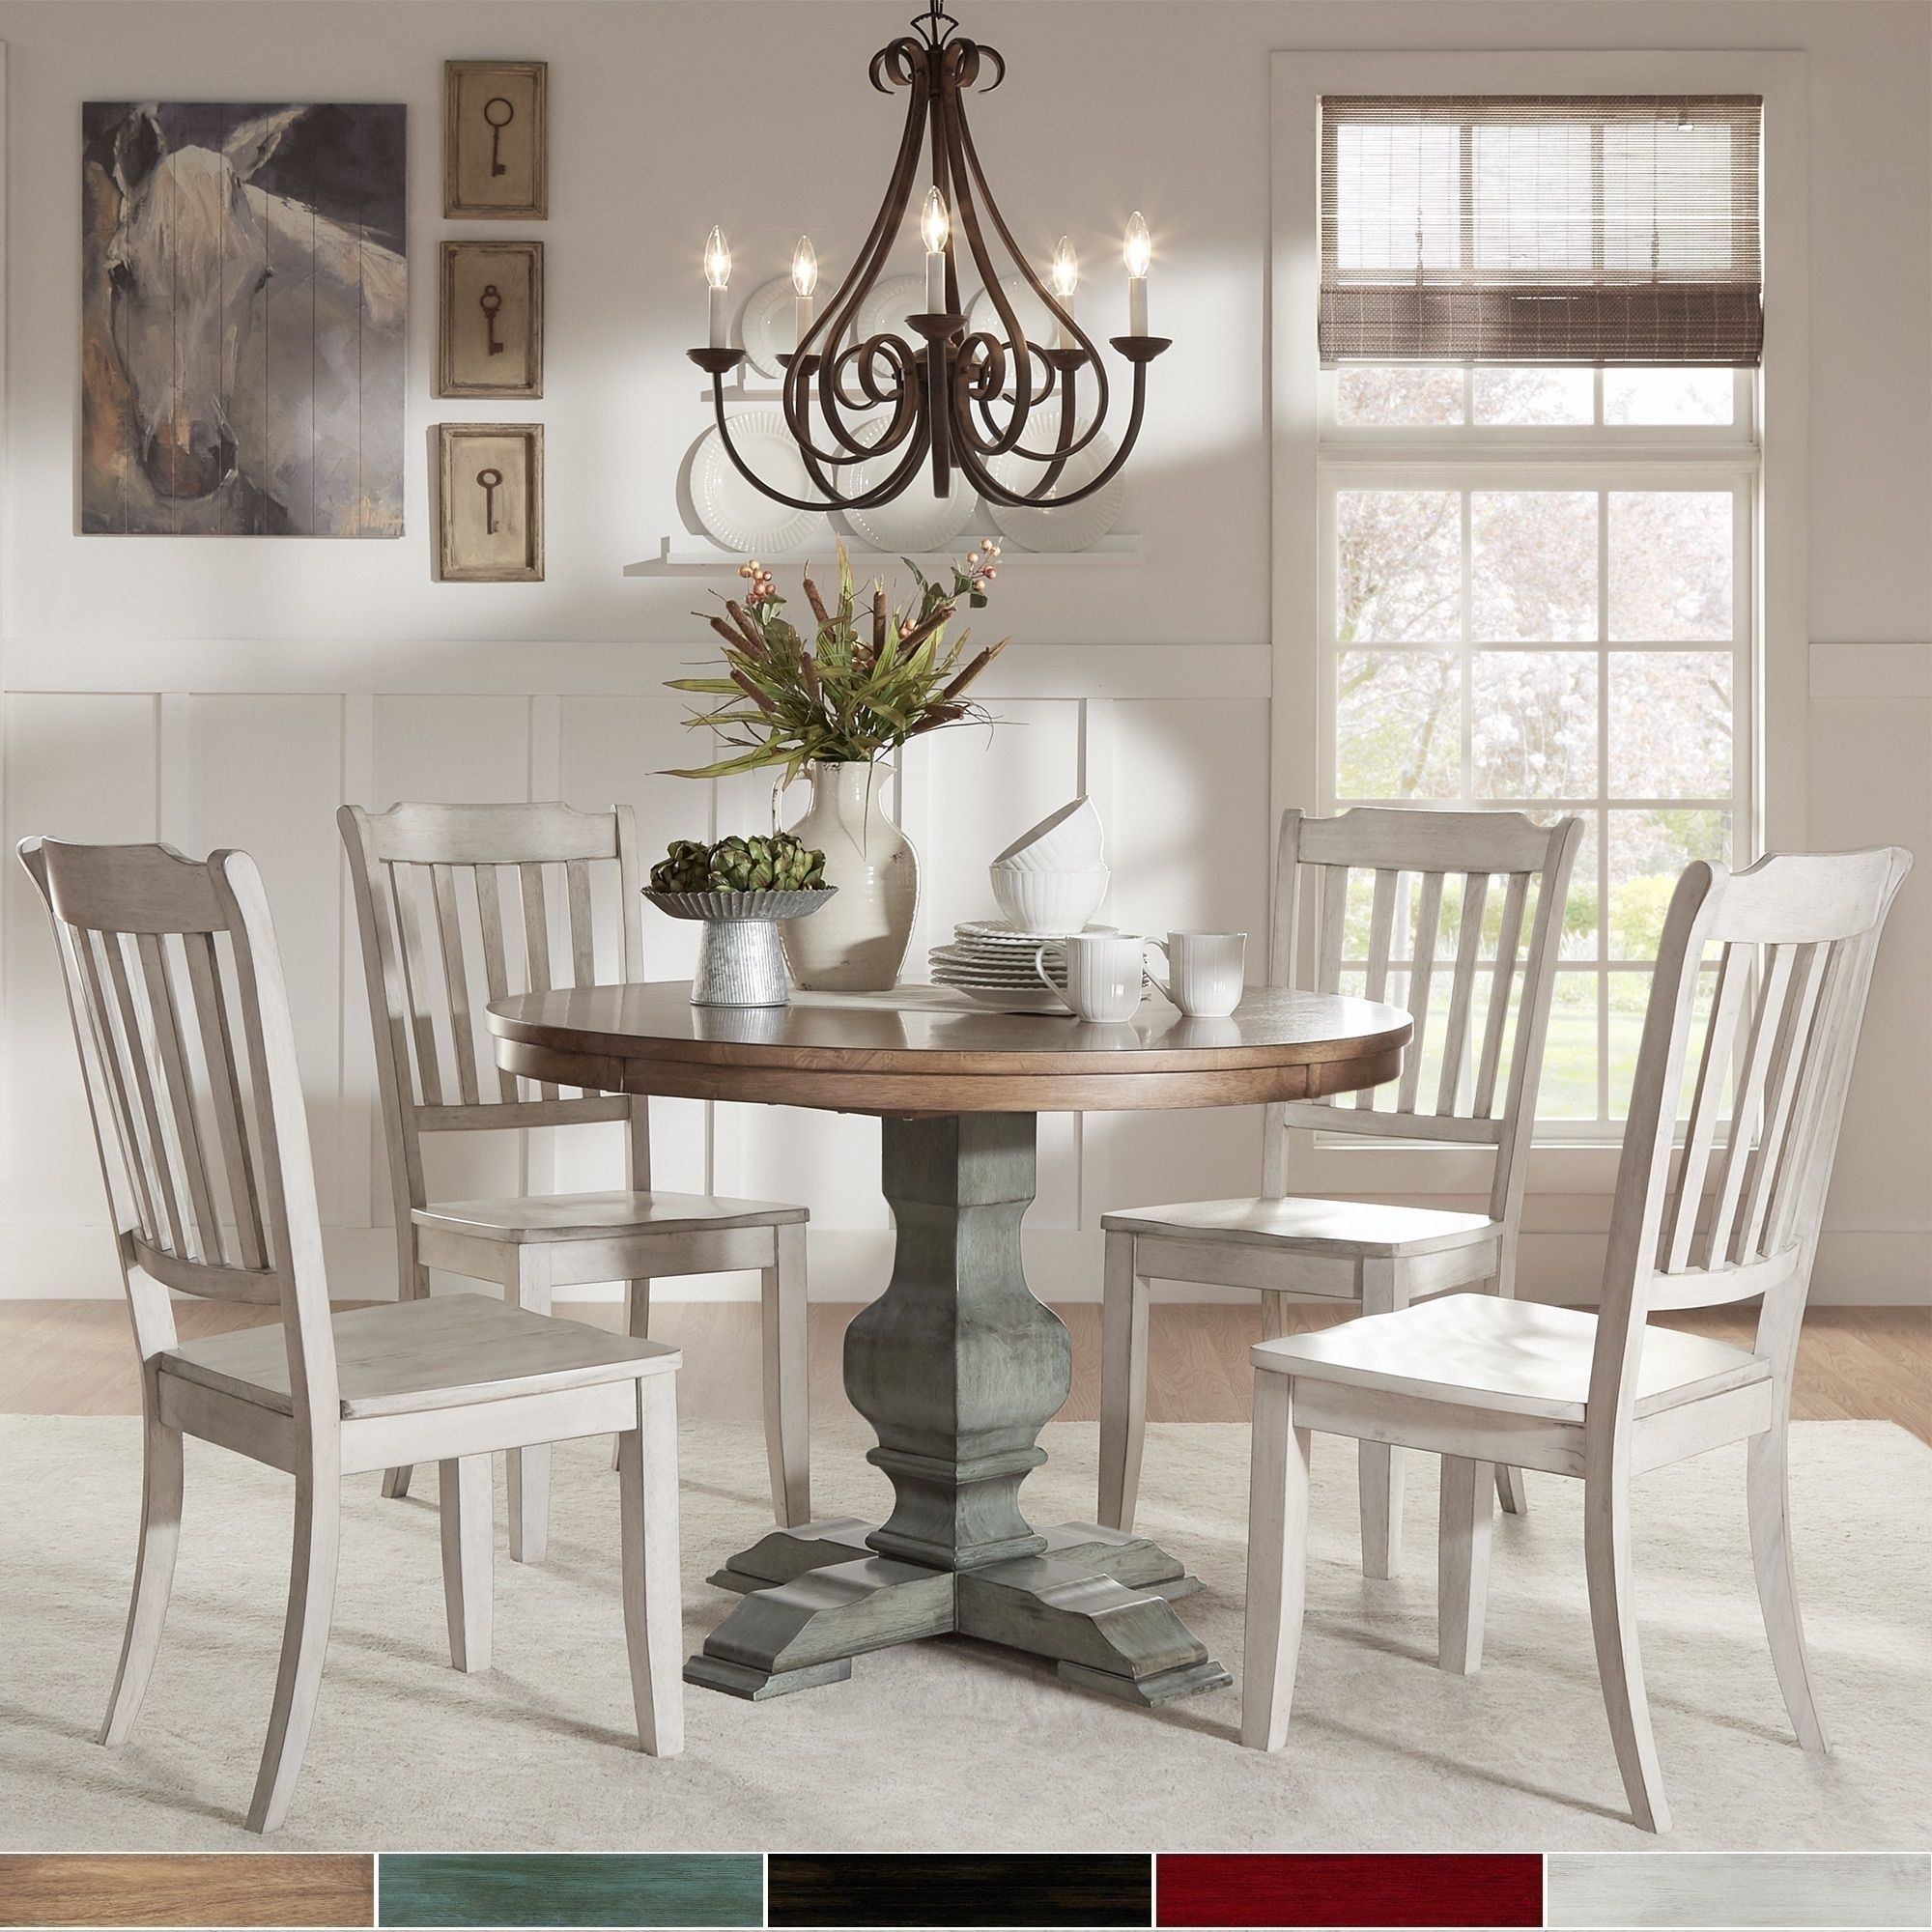 Eleanor Sage Green Round Soild Wood Top 5-Piece Dining Set - Slat Back by  iNSPIRE Q Classic (5-Piece Set - Antique Grey Chairs), Size 5-Piece Sets